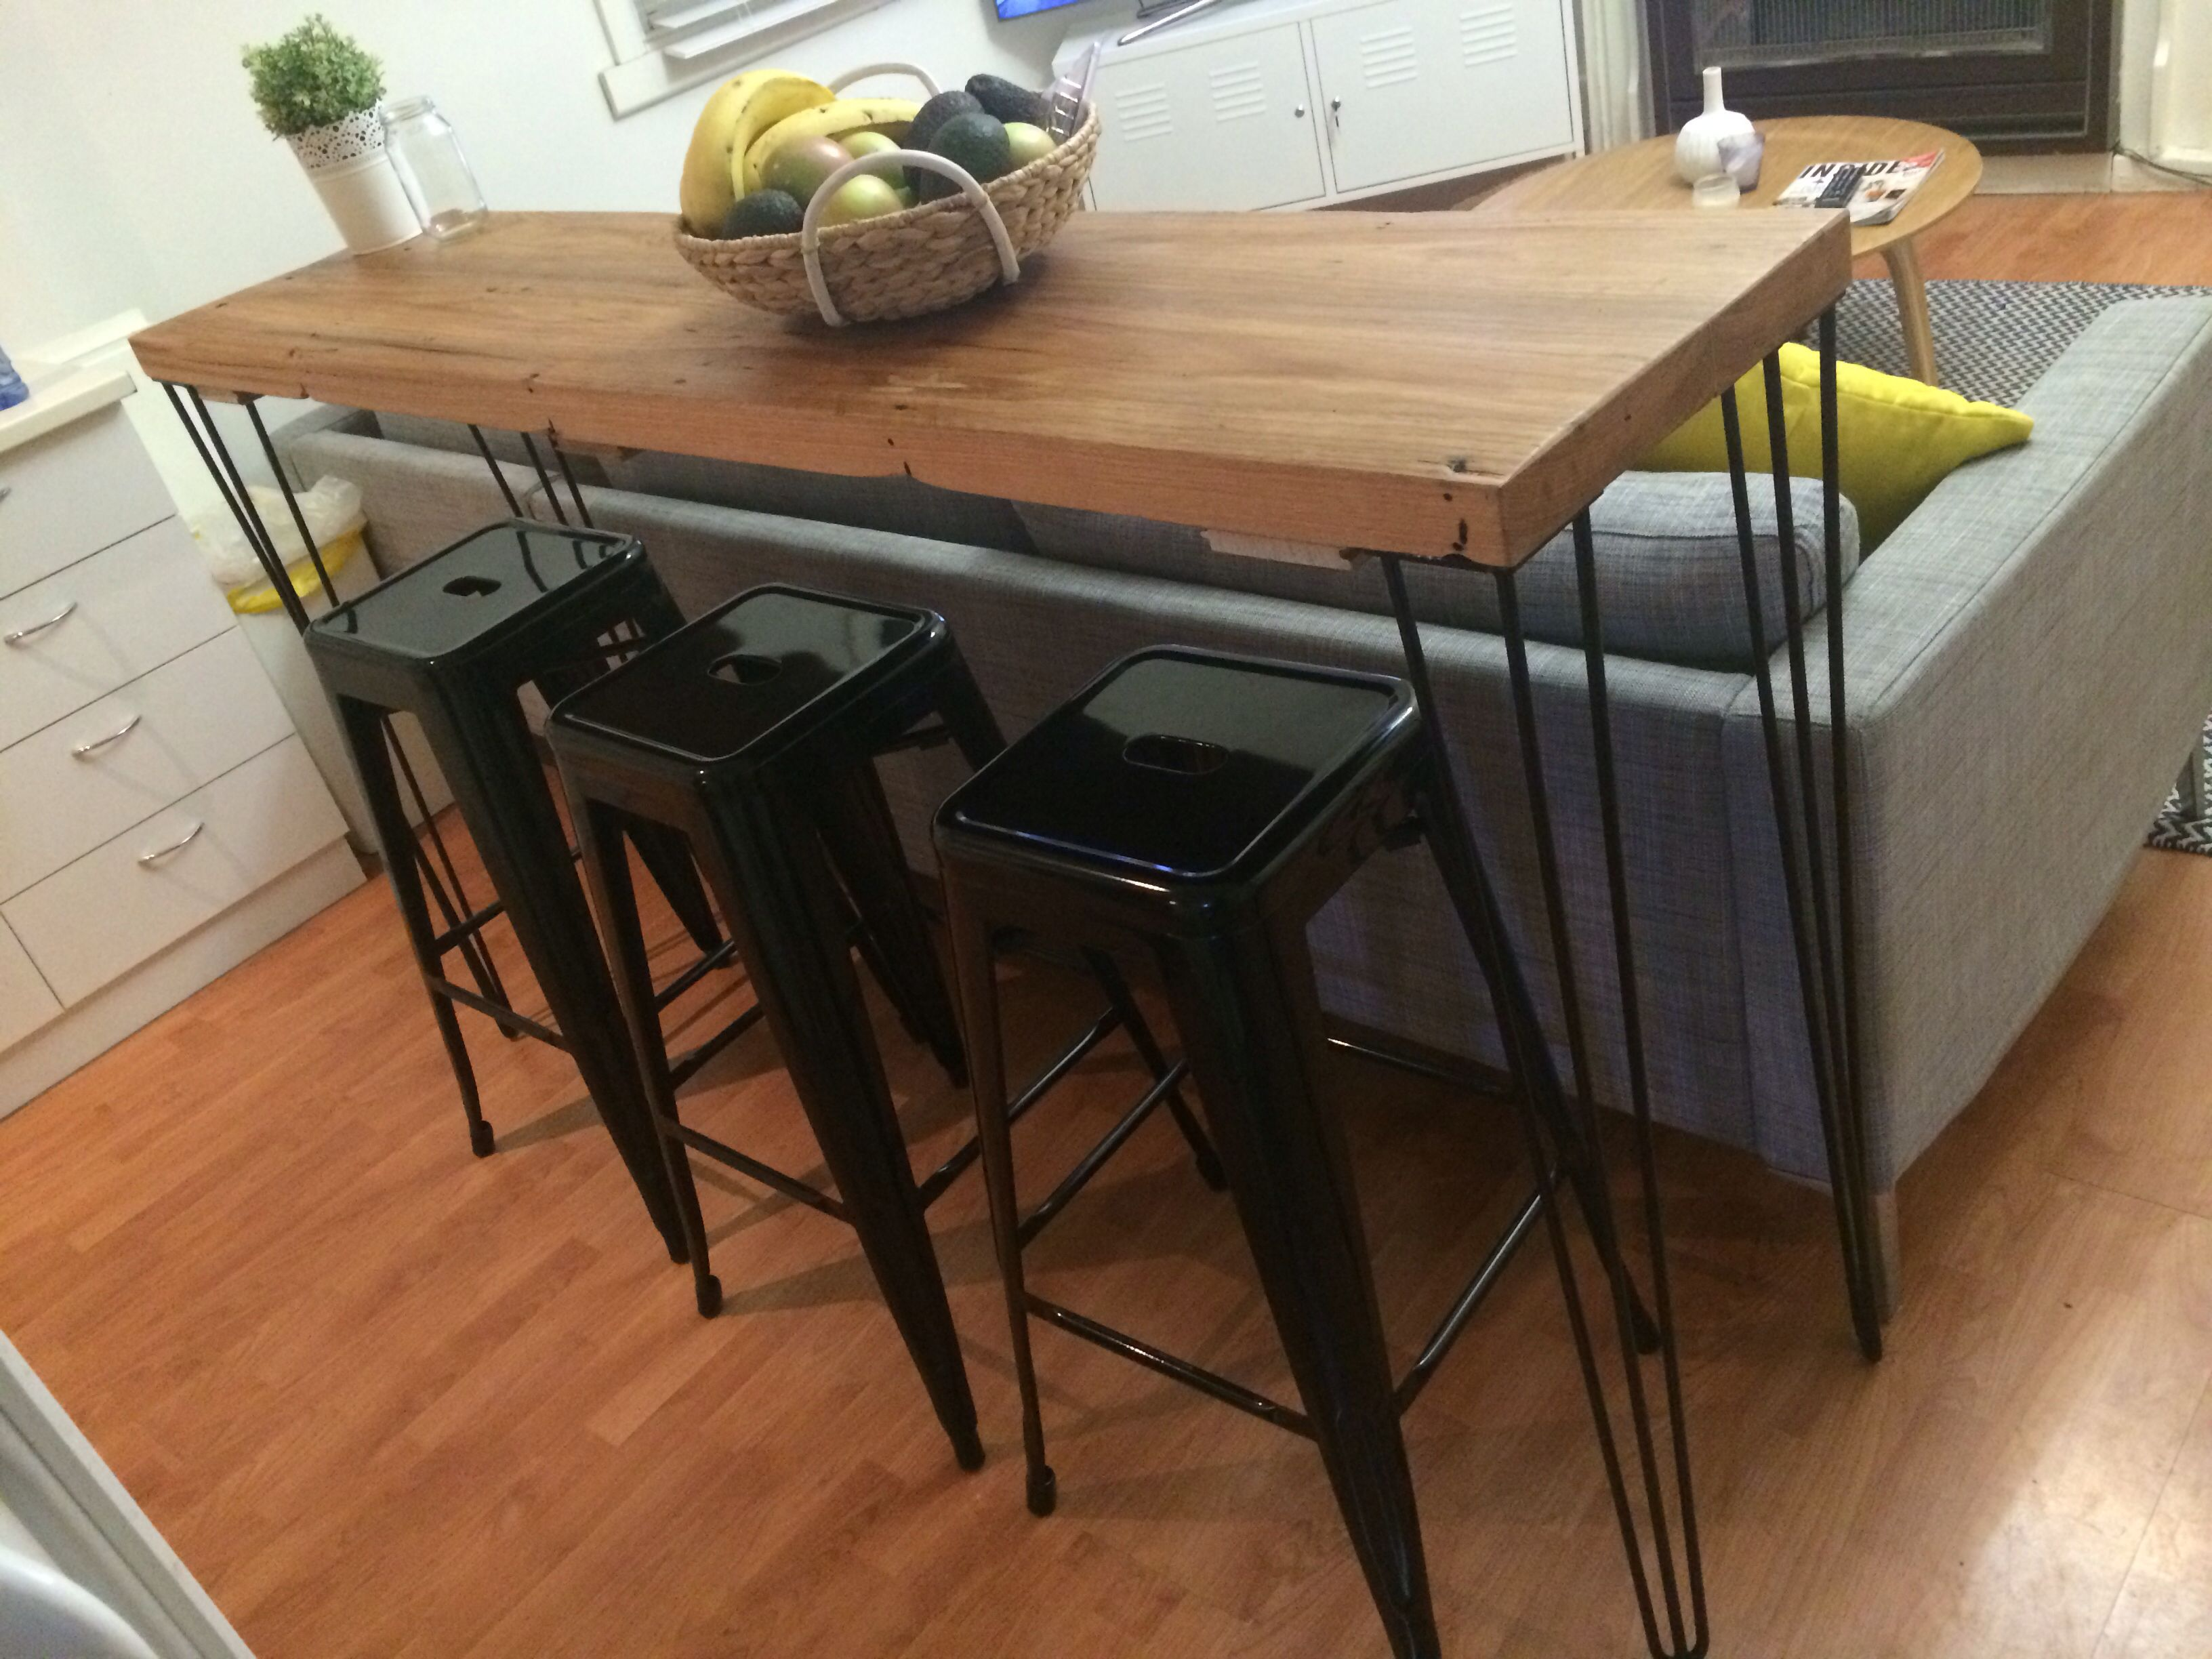 Upcycled Timber Table Top Breakfast Bar Messmate 1600 X 400 X 50mm Legs  Supplied By Customer